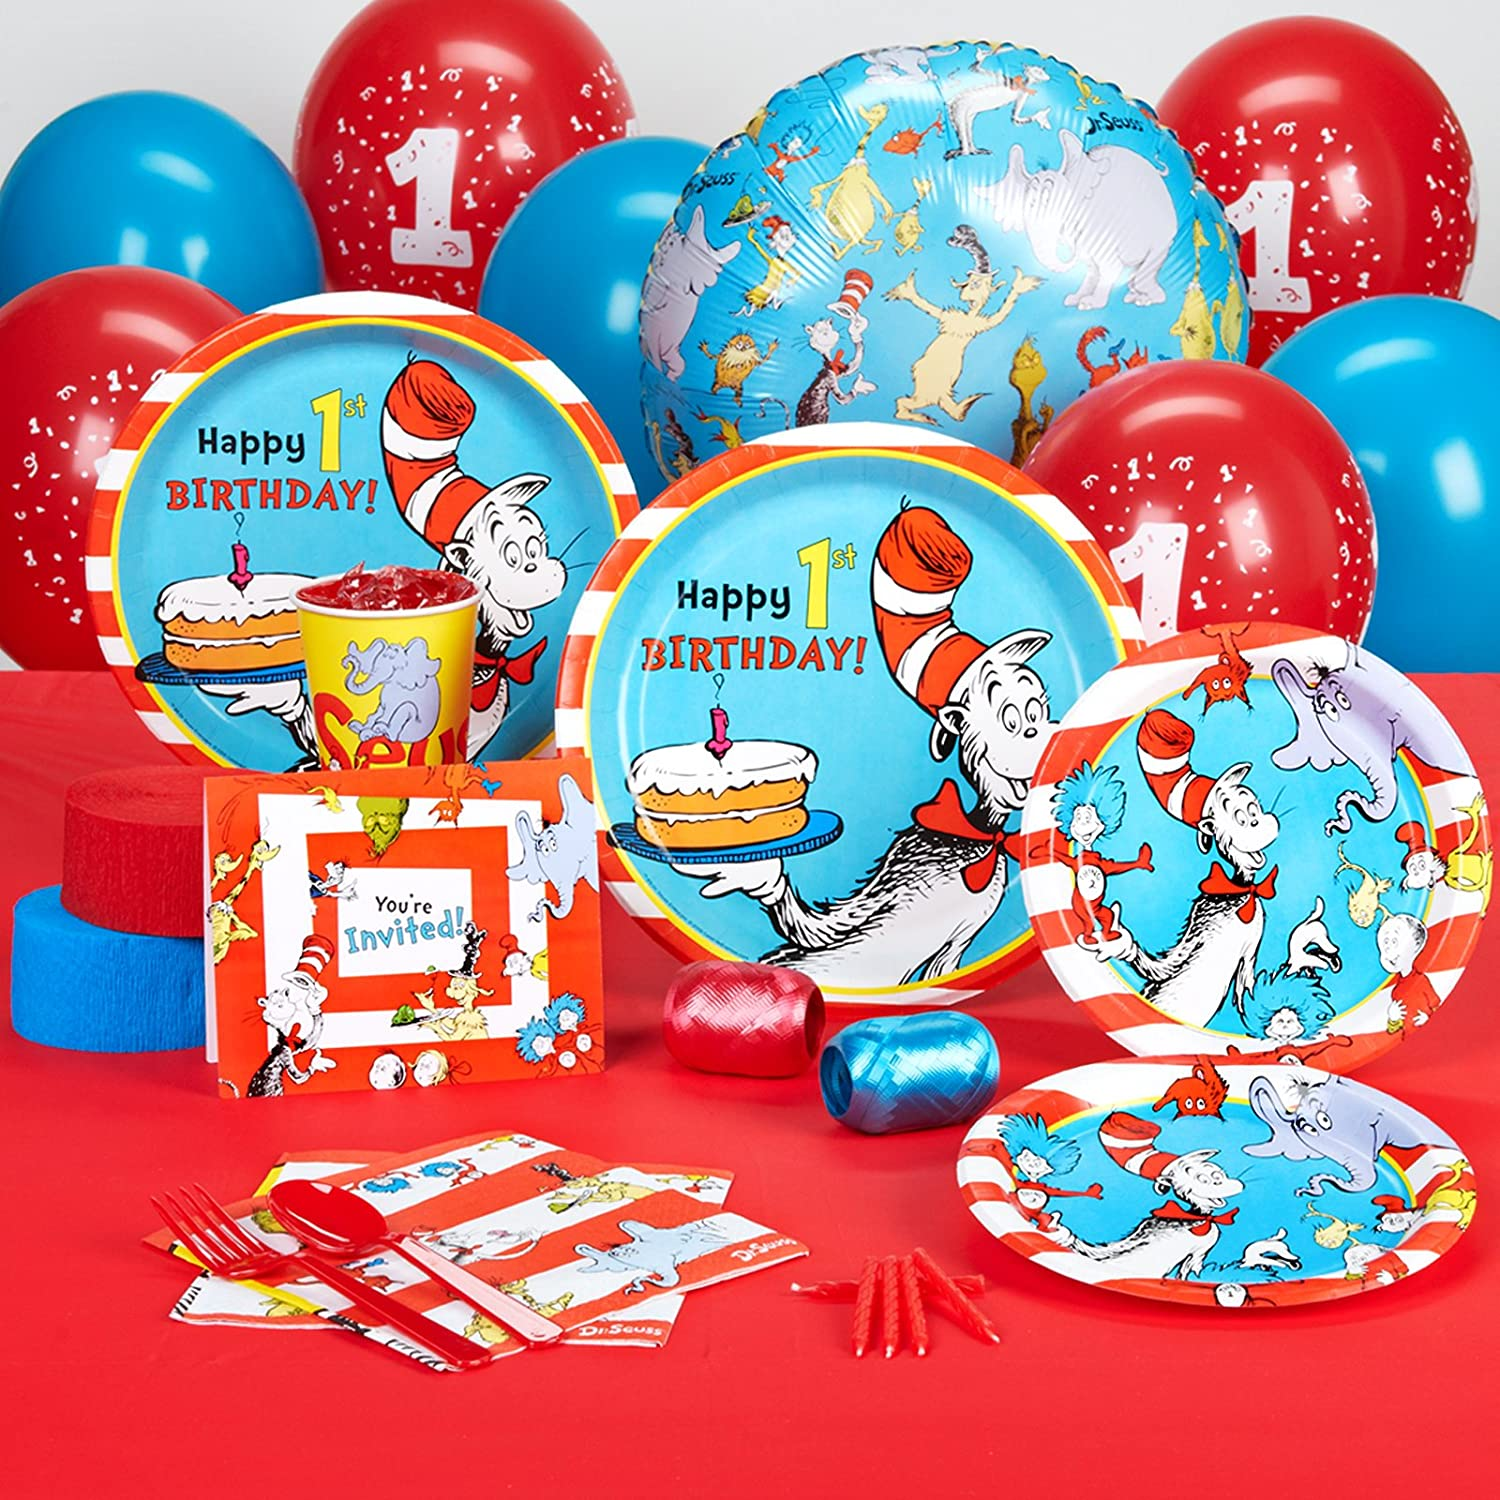 Amazon.com: Dr Seuss 1st Birthday Party Supplies - Standard Party ...